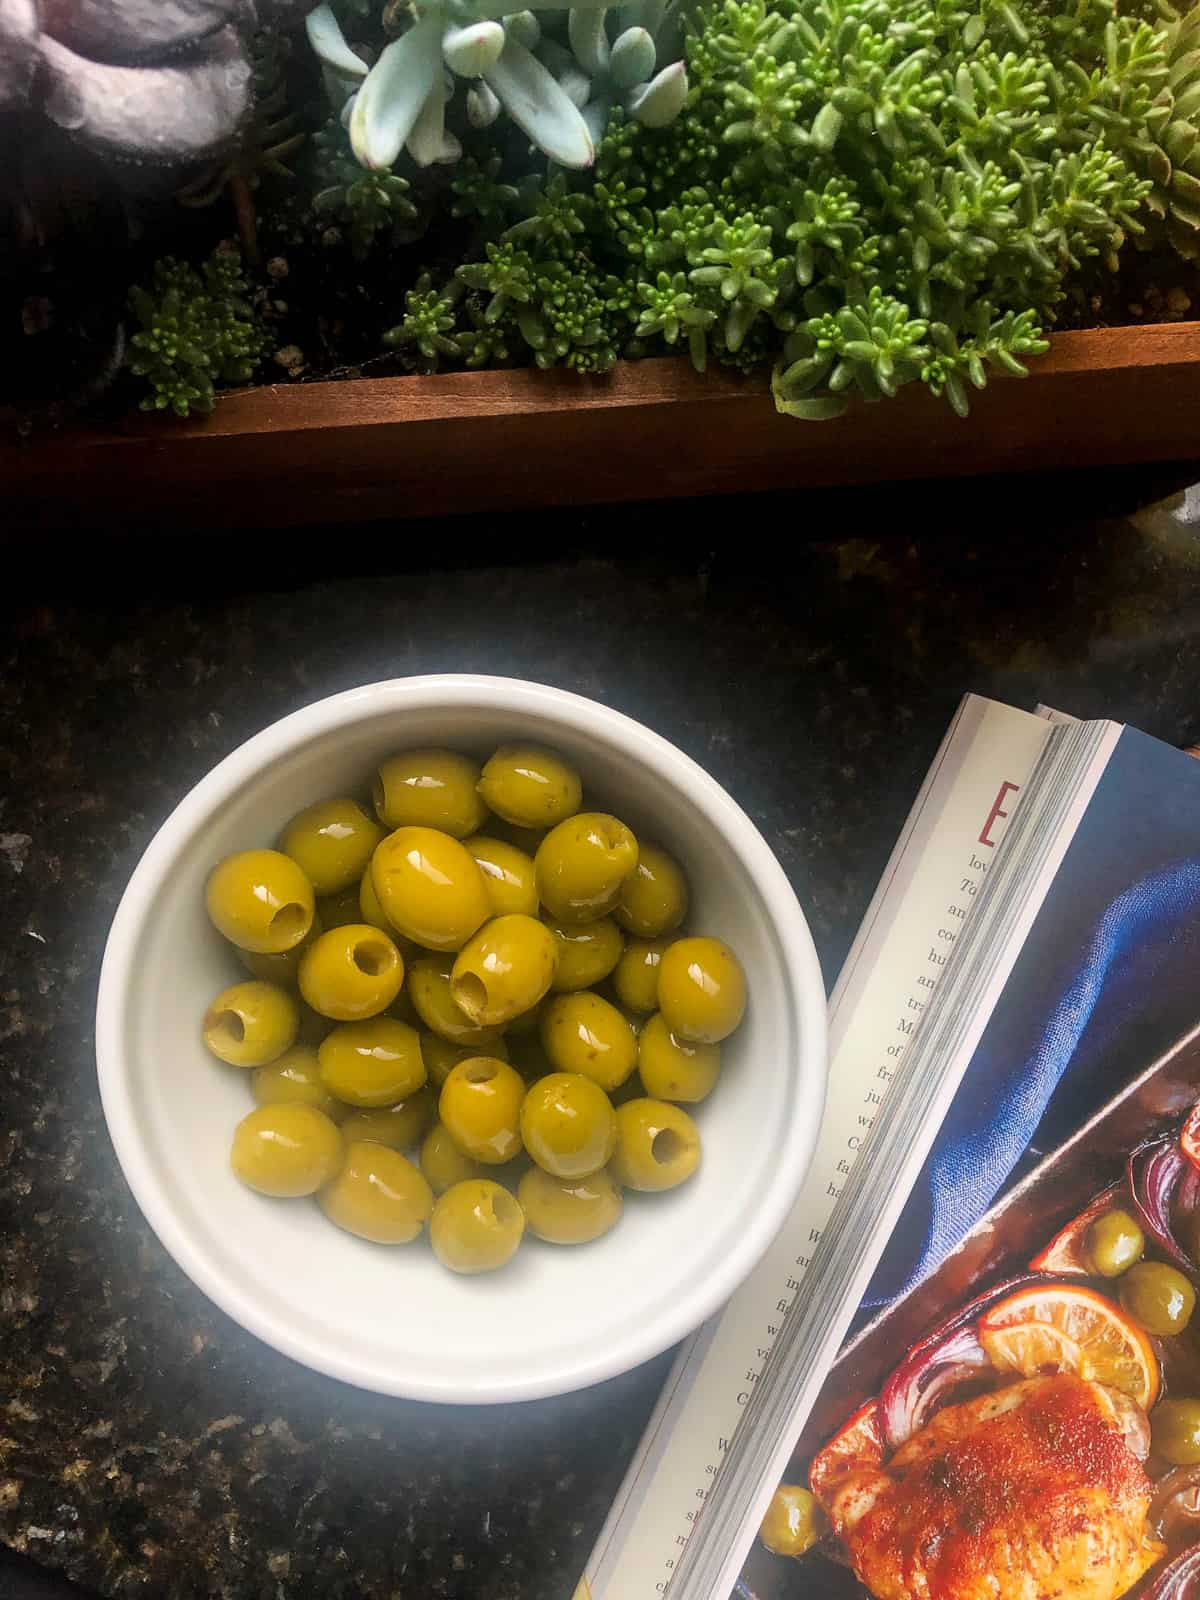 Pour in a drained can of California green olives and roast for another 5-10 minutes.